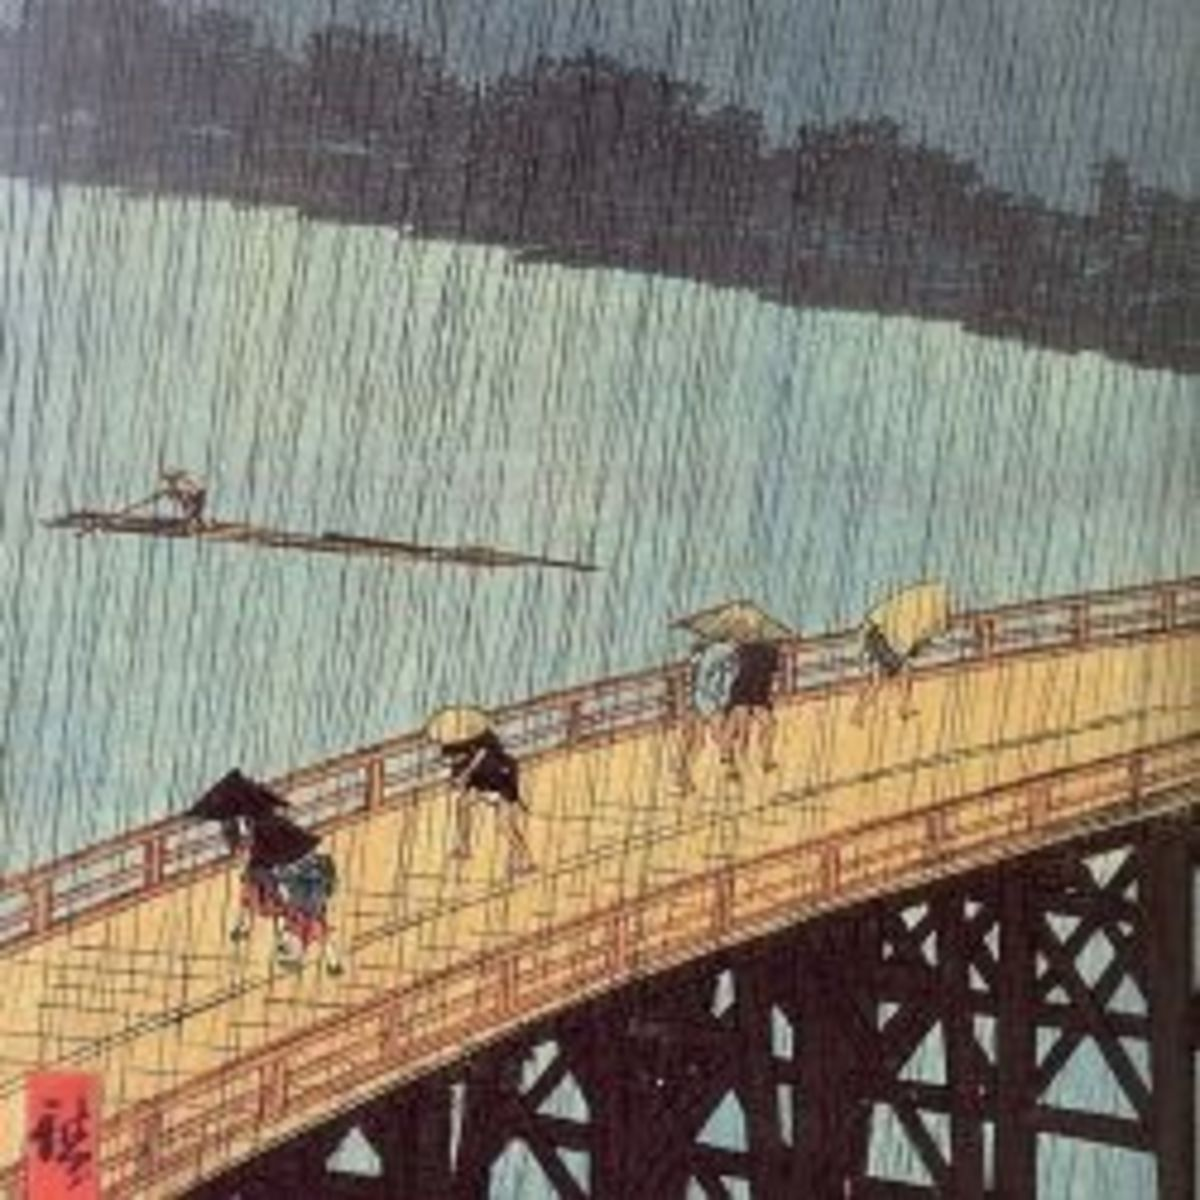 Evening Shower at Atake and the Great Bridge from the serie One Hundred Famous Views of Edo by Utagawa Hiroshige [Public domain]